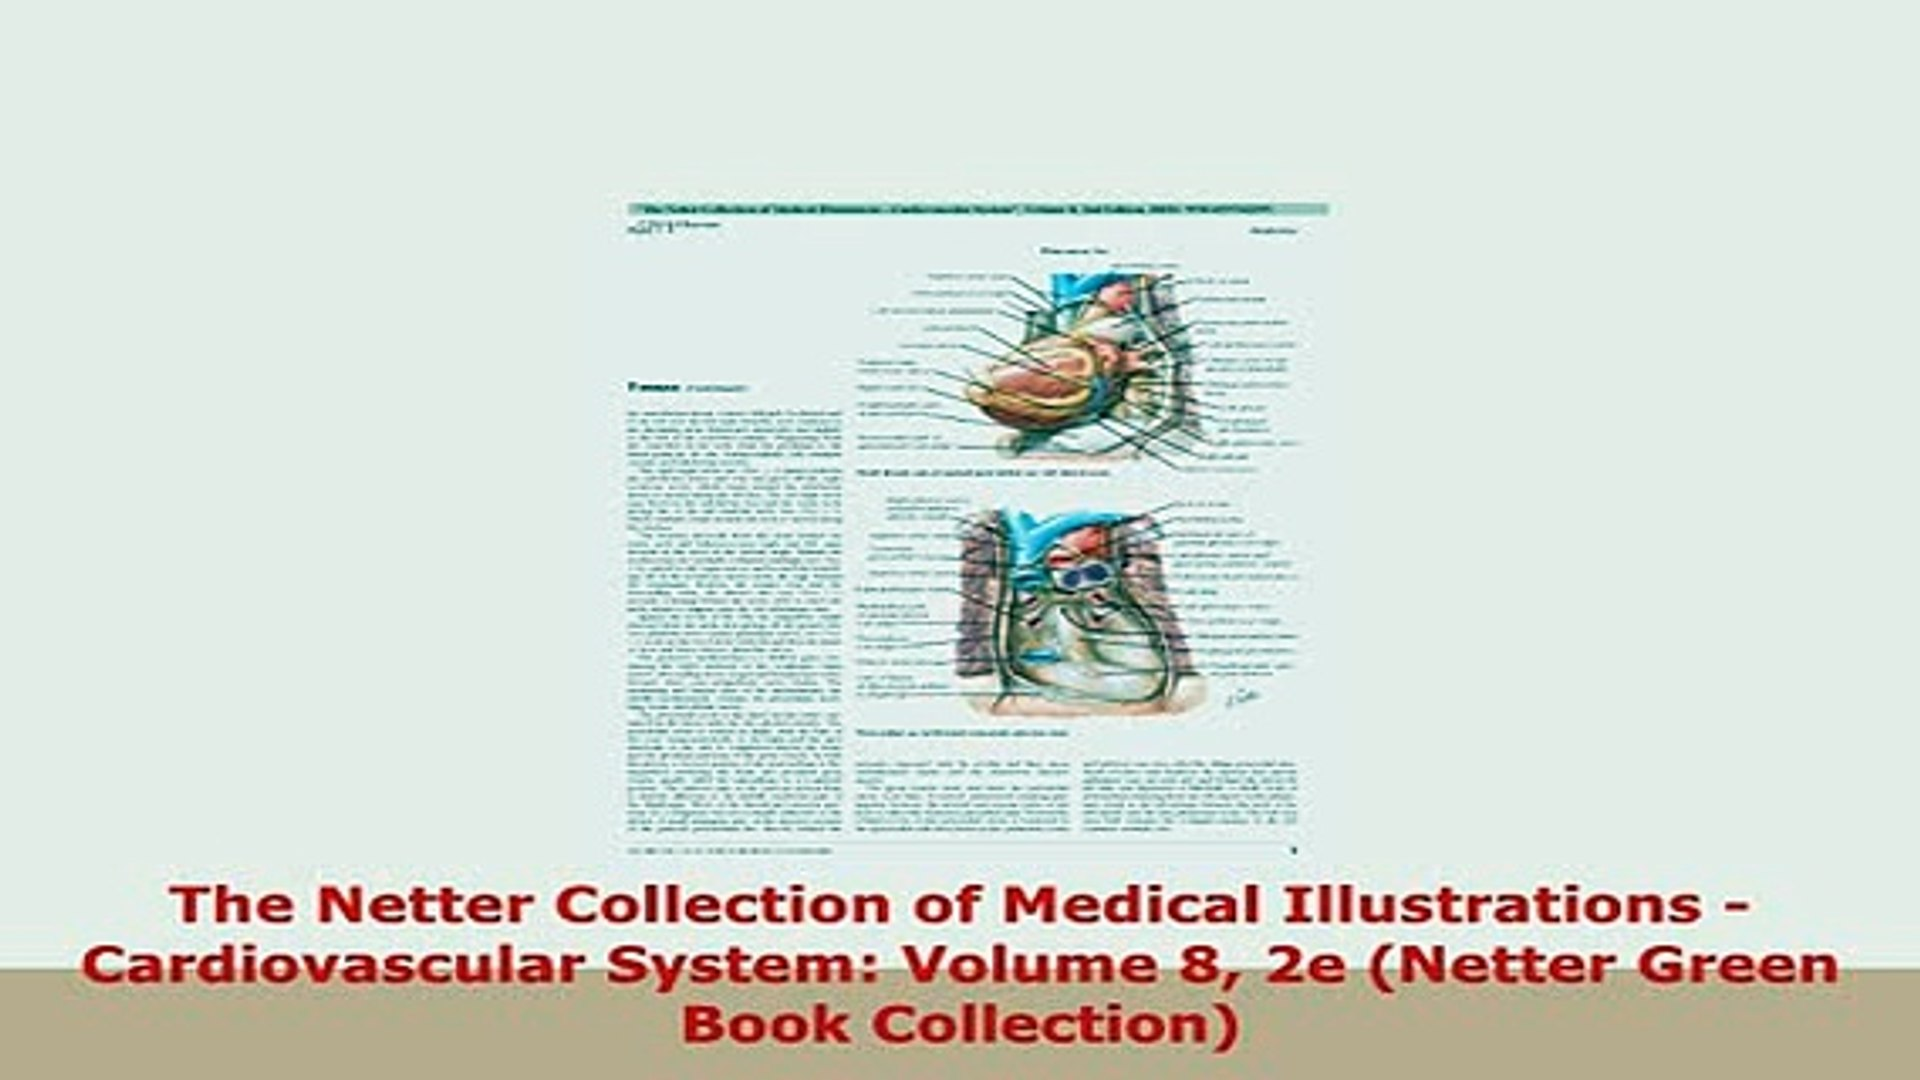 The Netter Collection of Medical Illustrations - Cardiovascular System: Volume 8, 2e